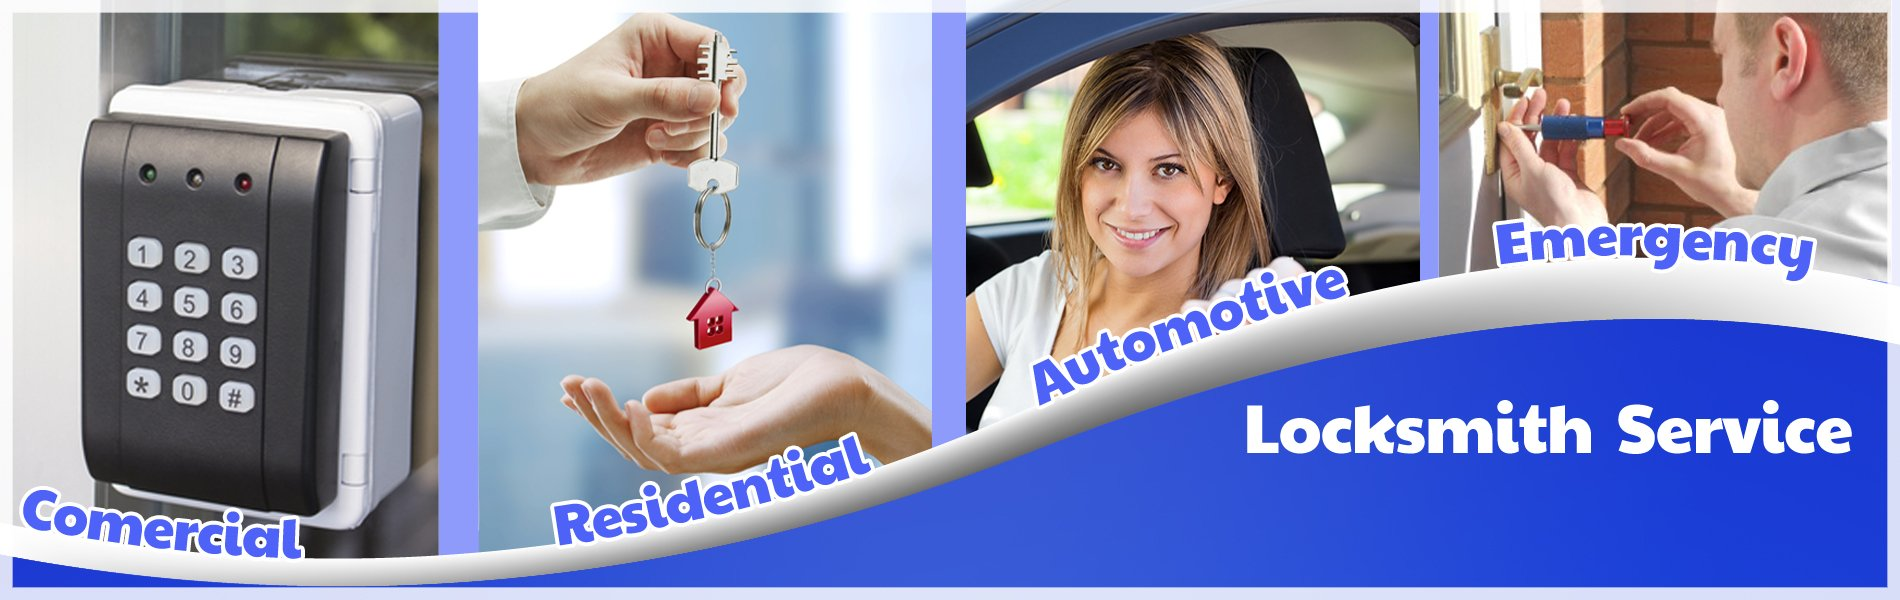 Carrollton Locksmith Service Carrollton, TX 972-512-0943